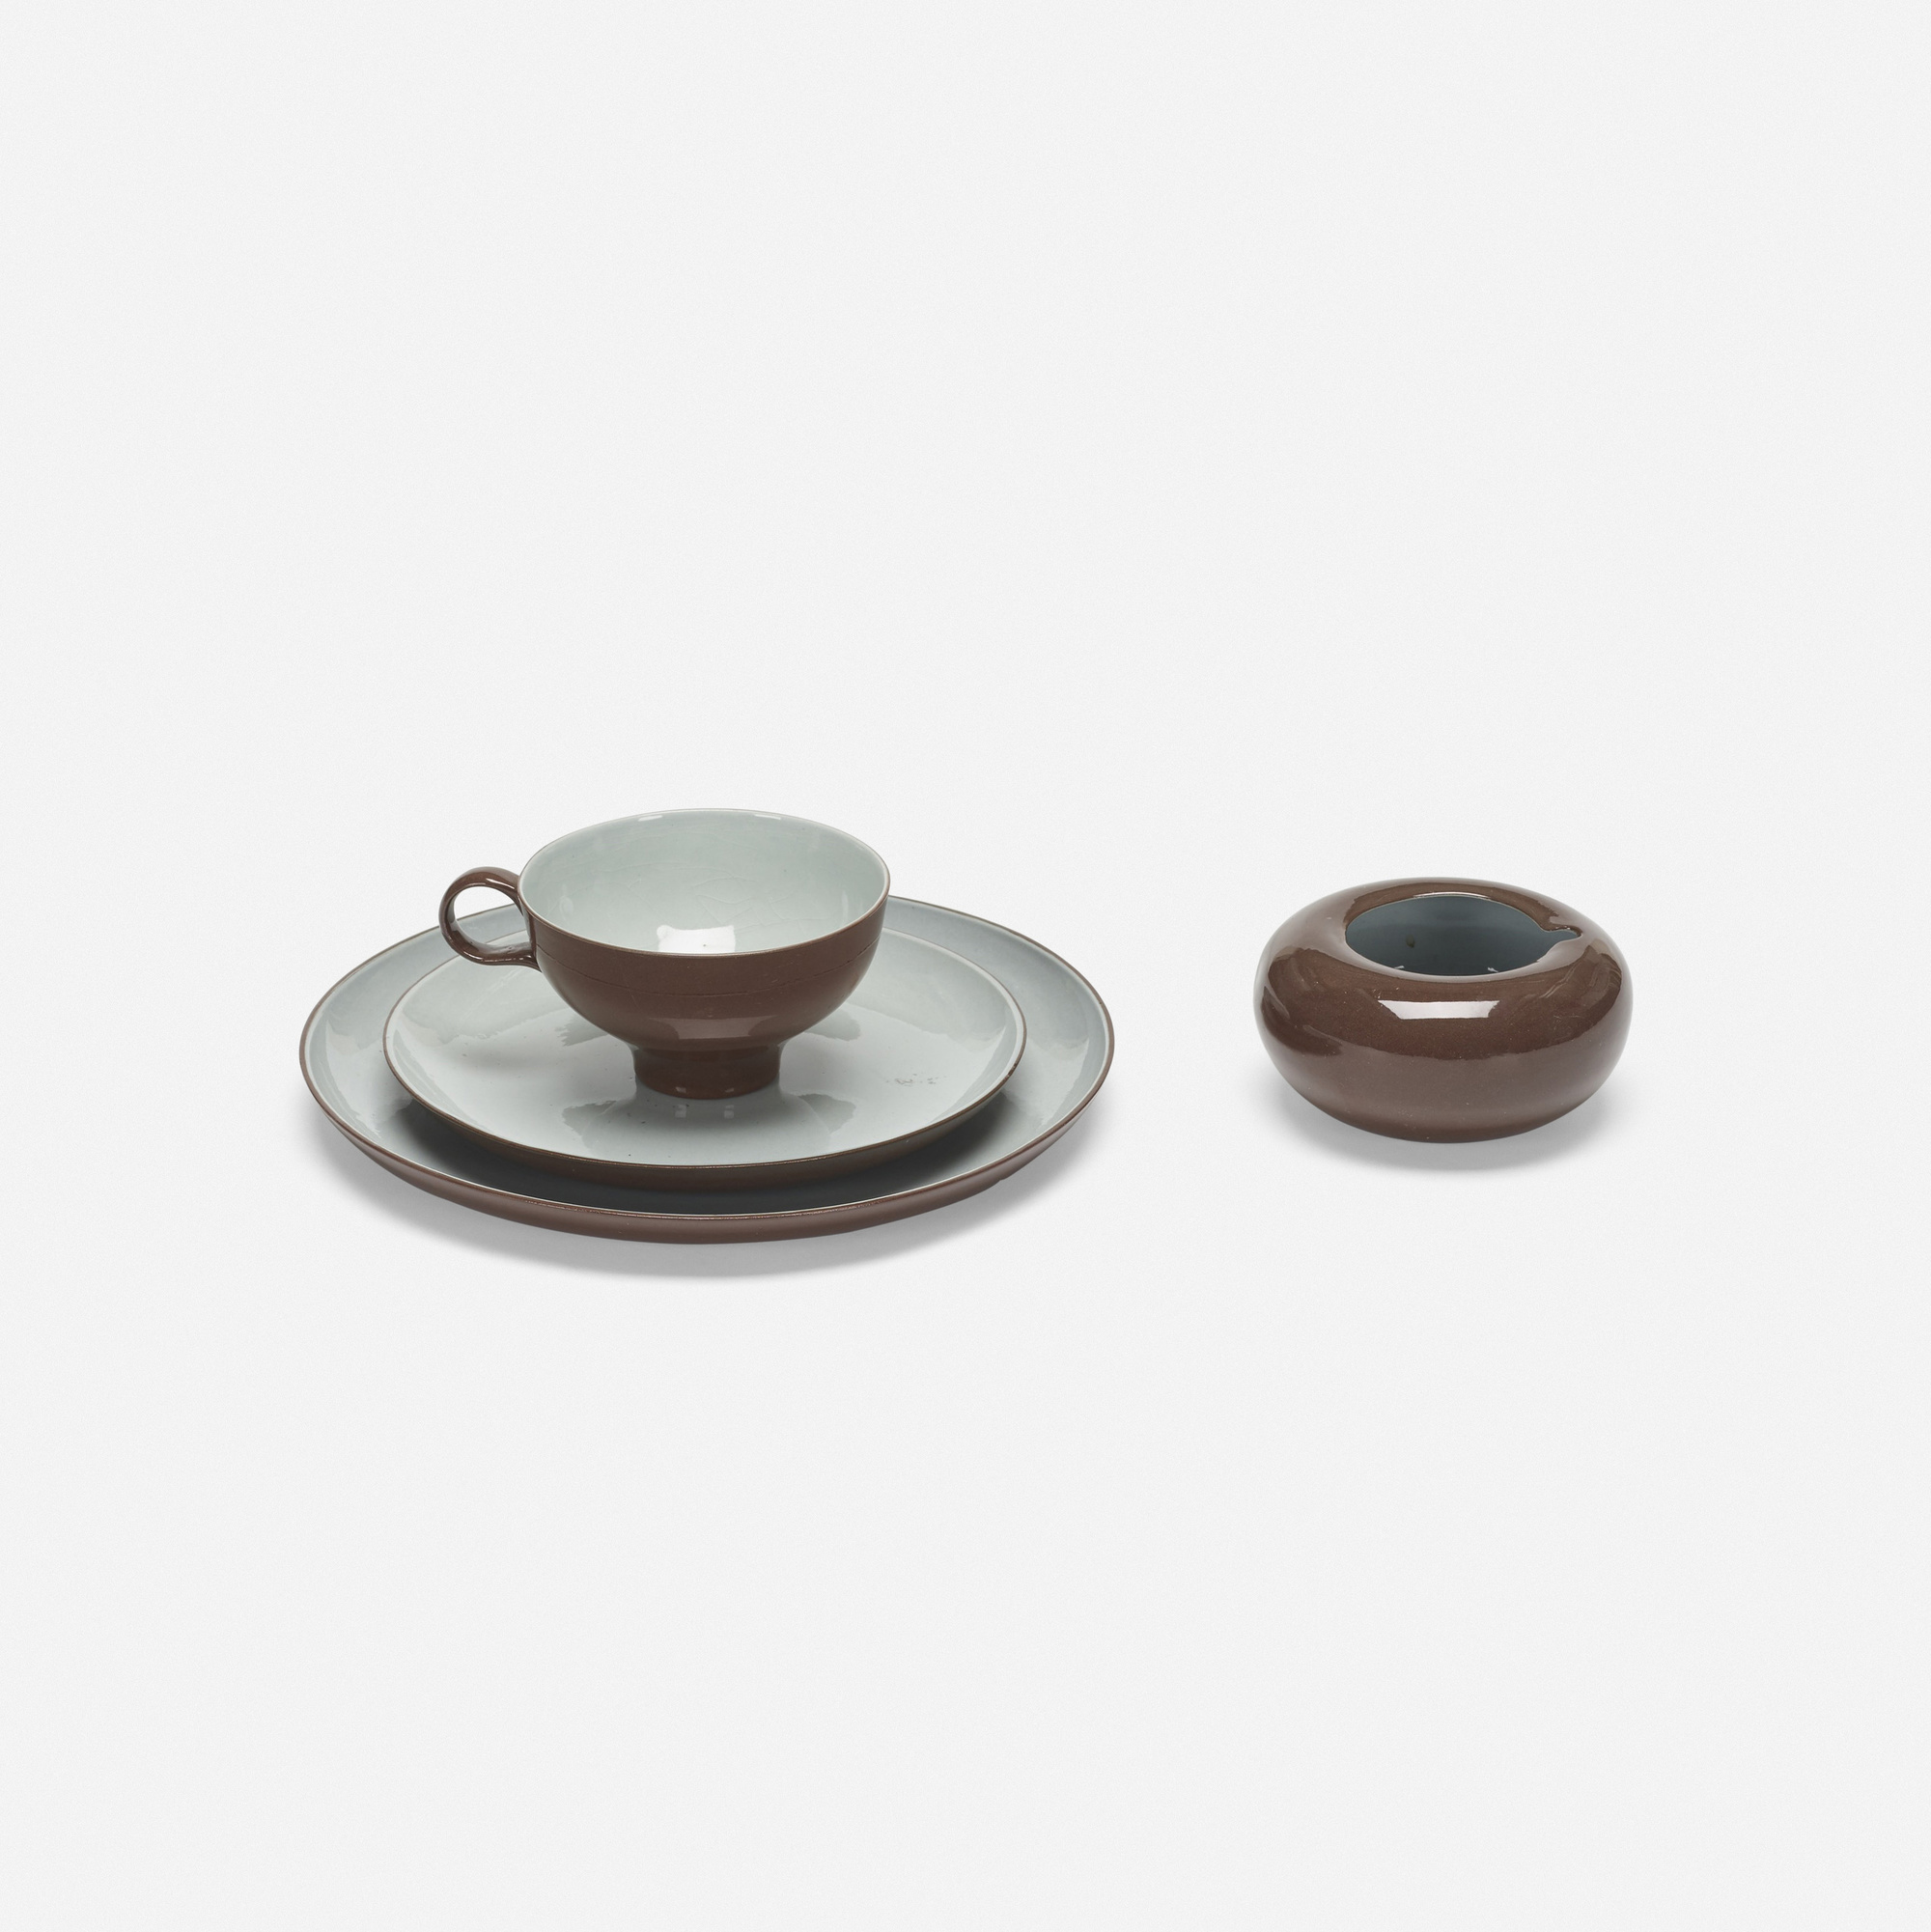 333: Eva Zeisel / collection of tableware (2 of 3)